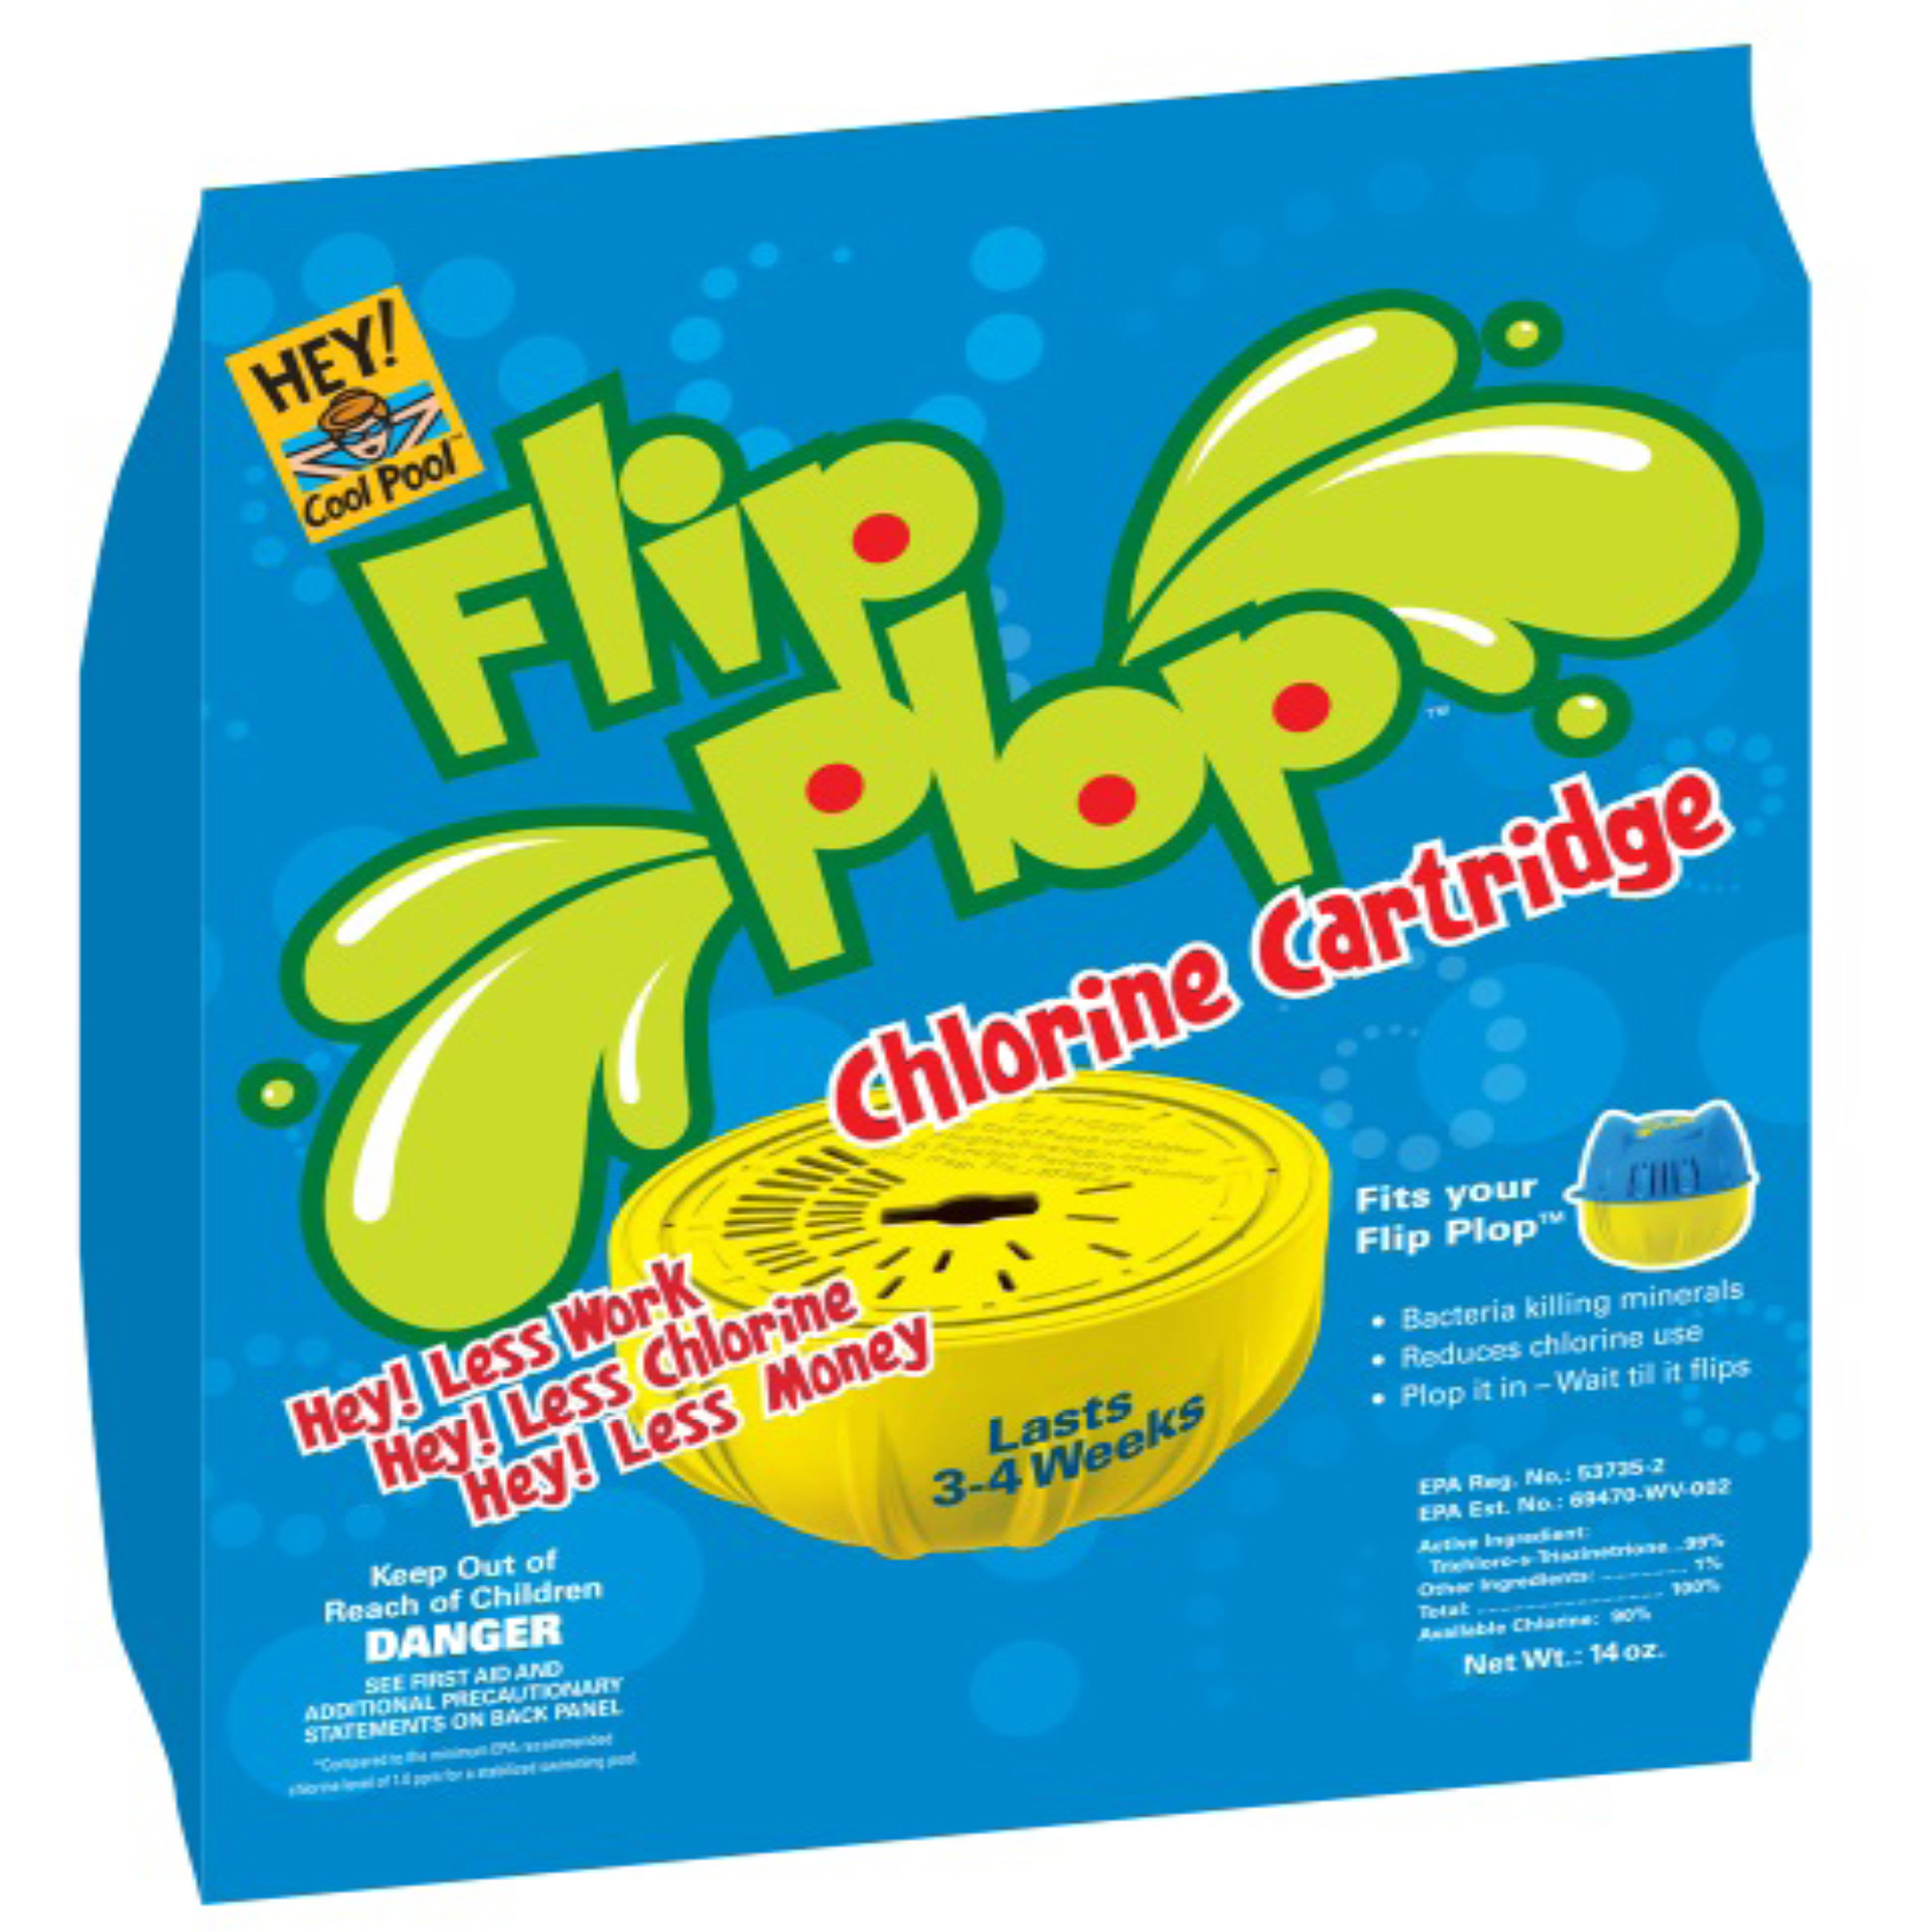 Hey! Cool Pool Flip Plop Refill Cartridge